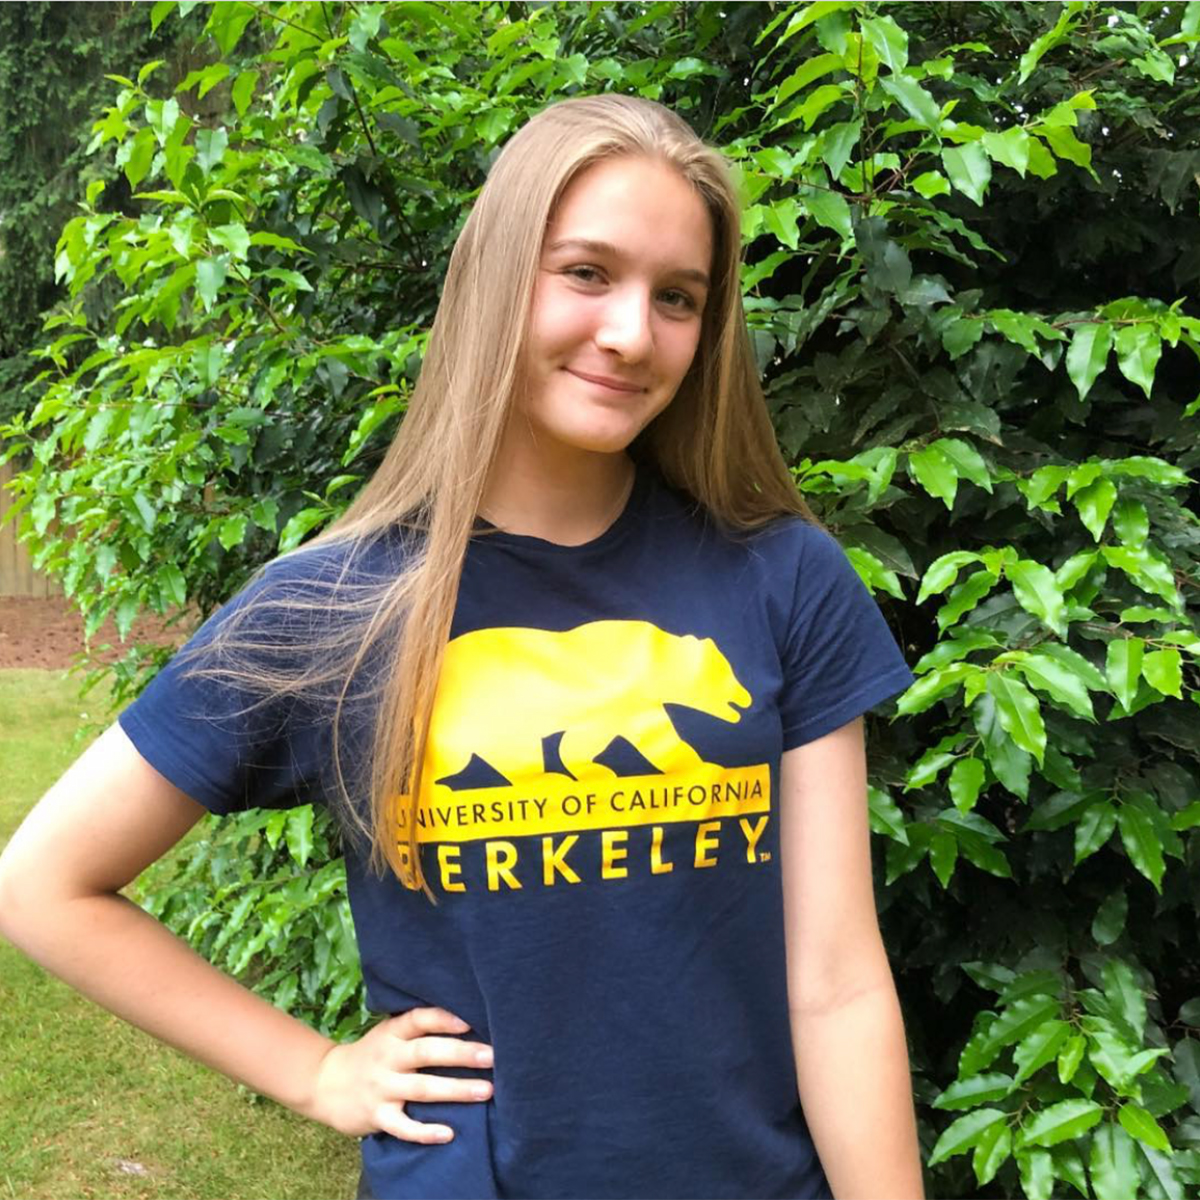 Alena Korobko – University of California Berkeley